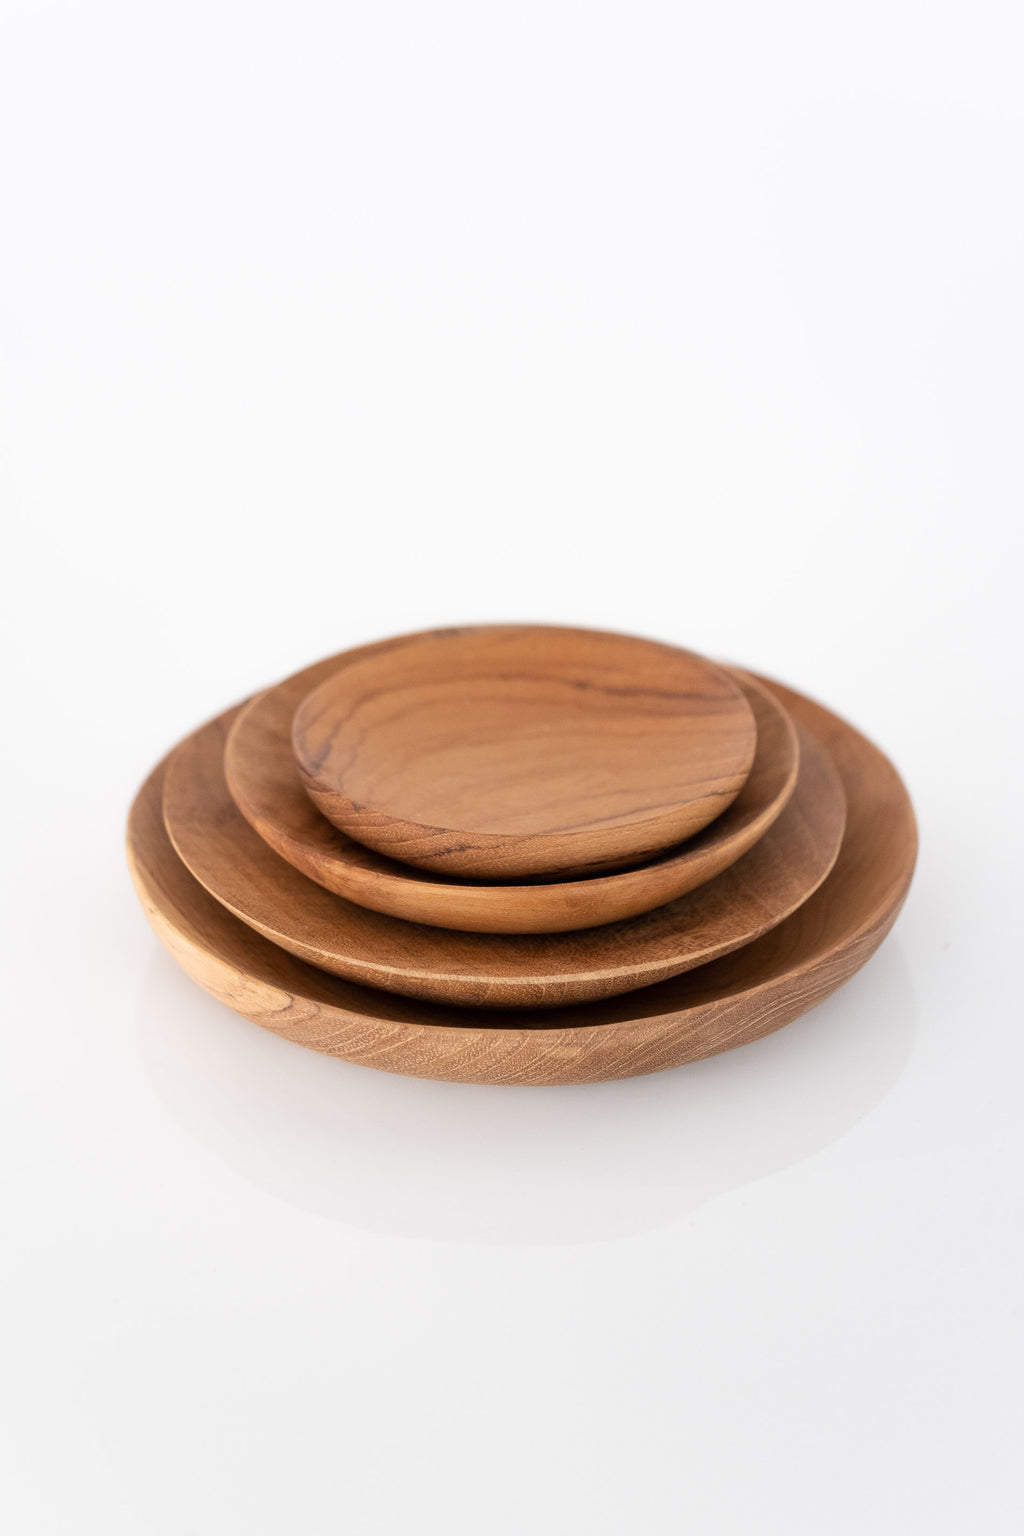 TEAK ROOT SHALLOW DISH SET